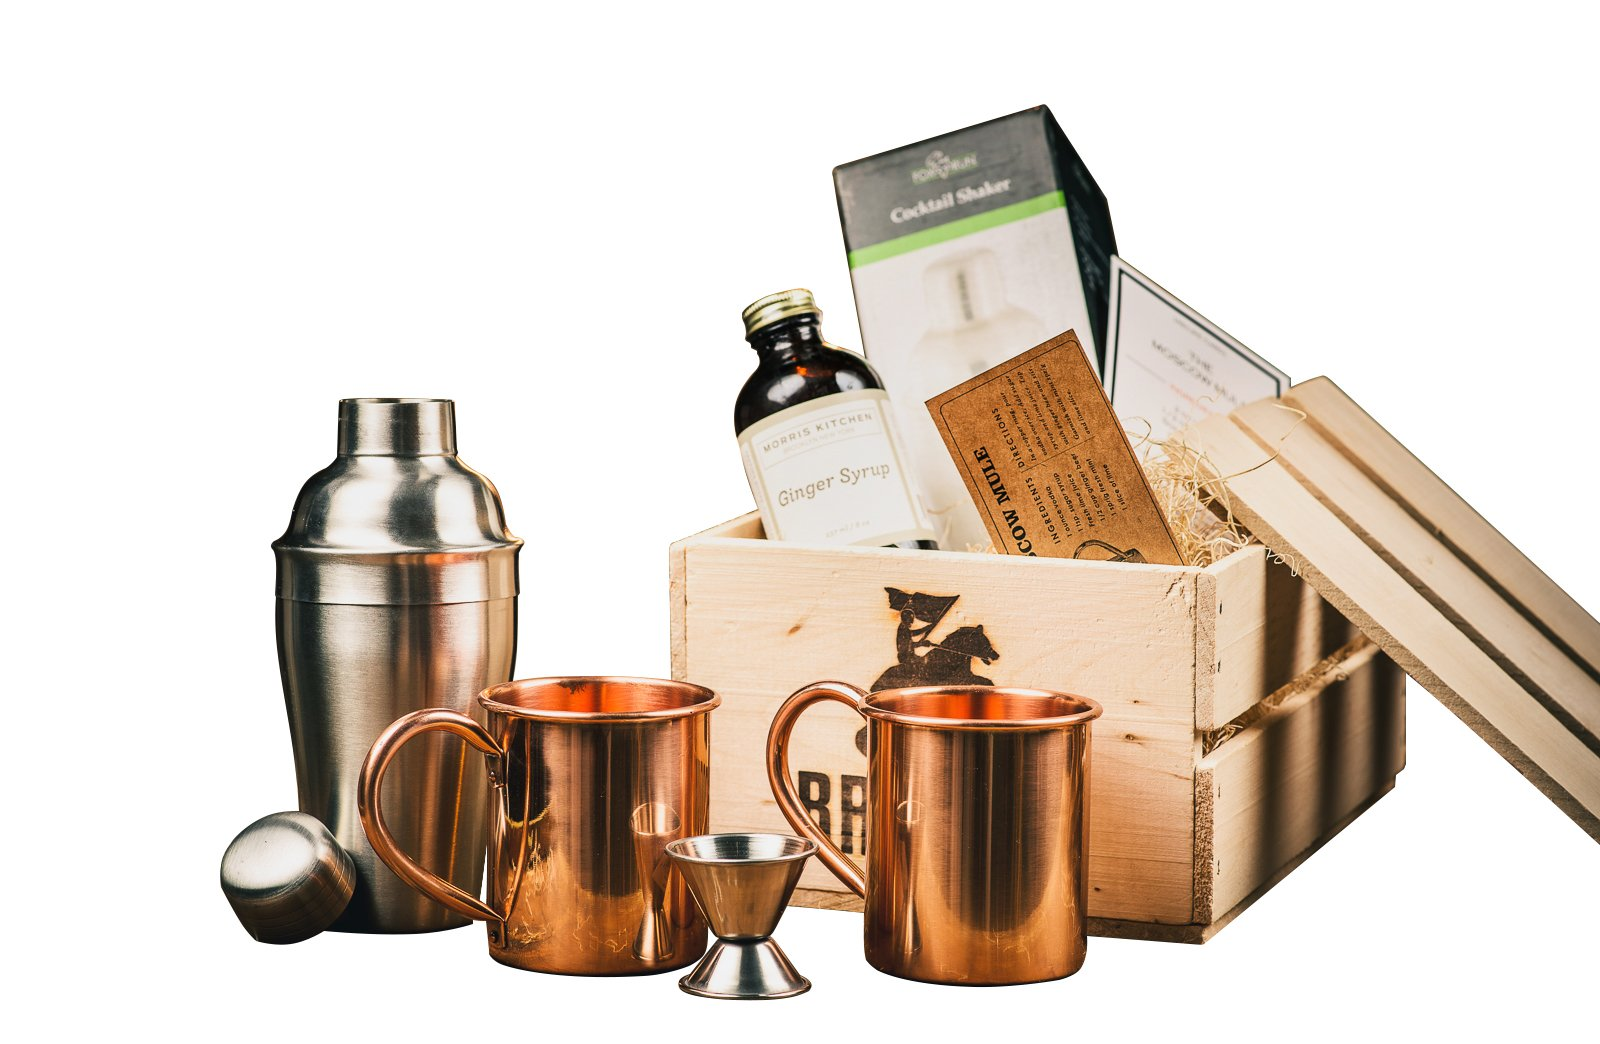 Moscow Mule Cocktail Kit Gift Set (Copper Mug Set 100% Pure Solid Copper) - Moscow Mule Bar Kit - Comes in A Wooden Gift Crate - Great Gift For Men - Cocktail Kit For Men by Broquet (Image #1)